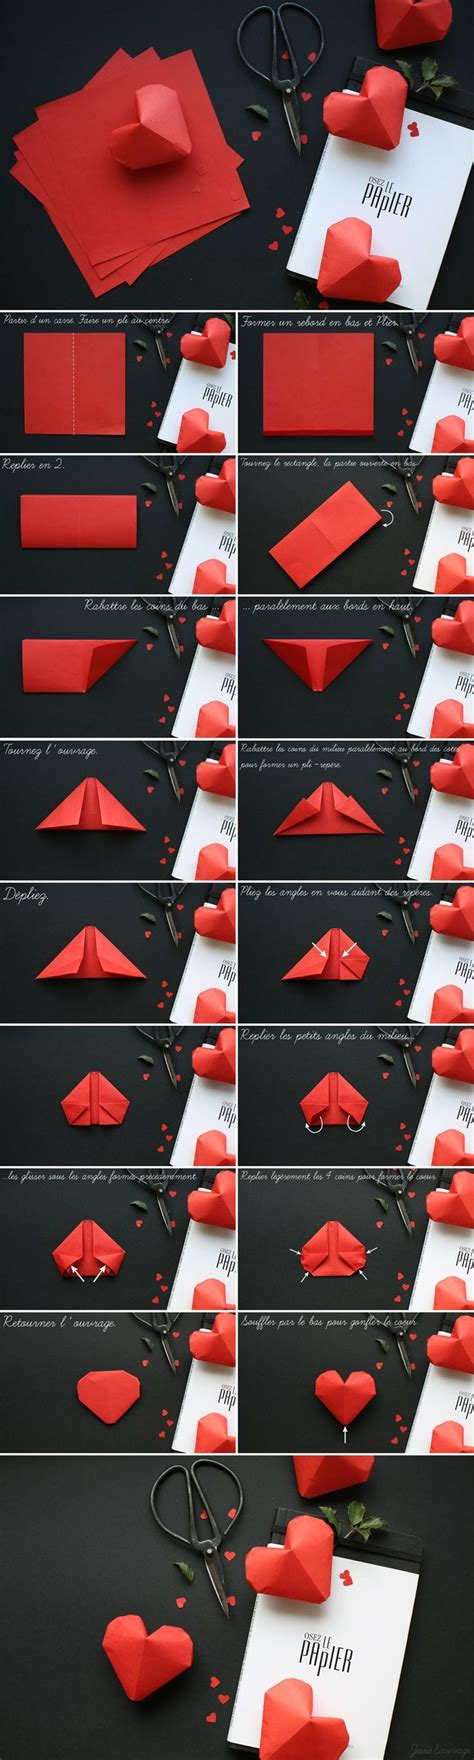 3d Hearts Origami - diy paper hearts pictures photos and images for